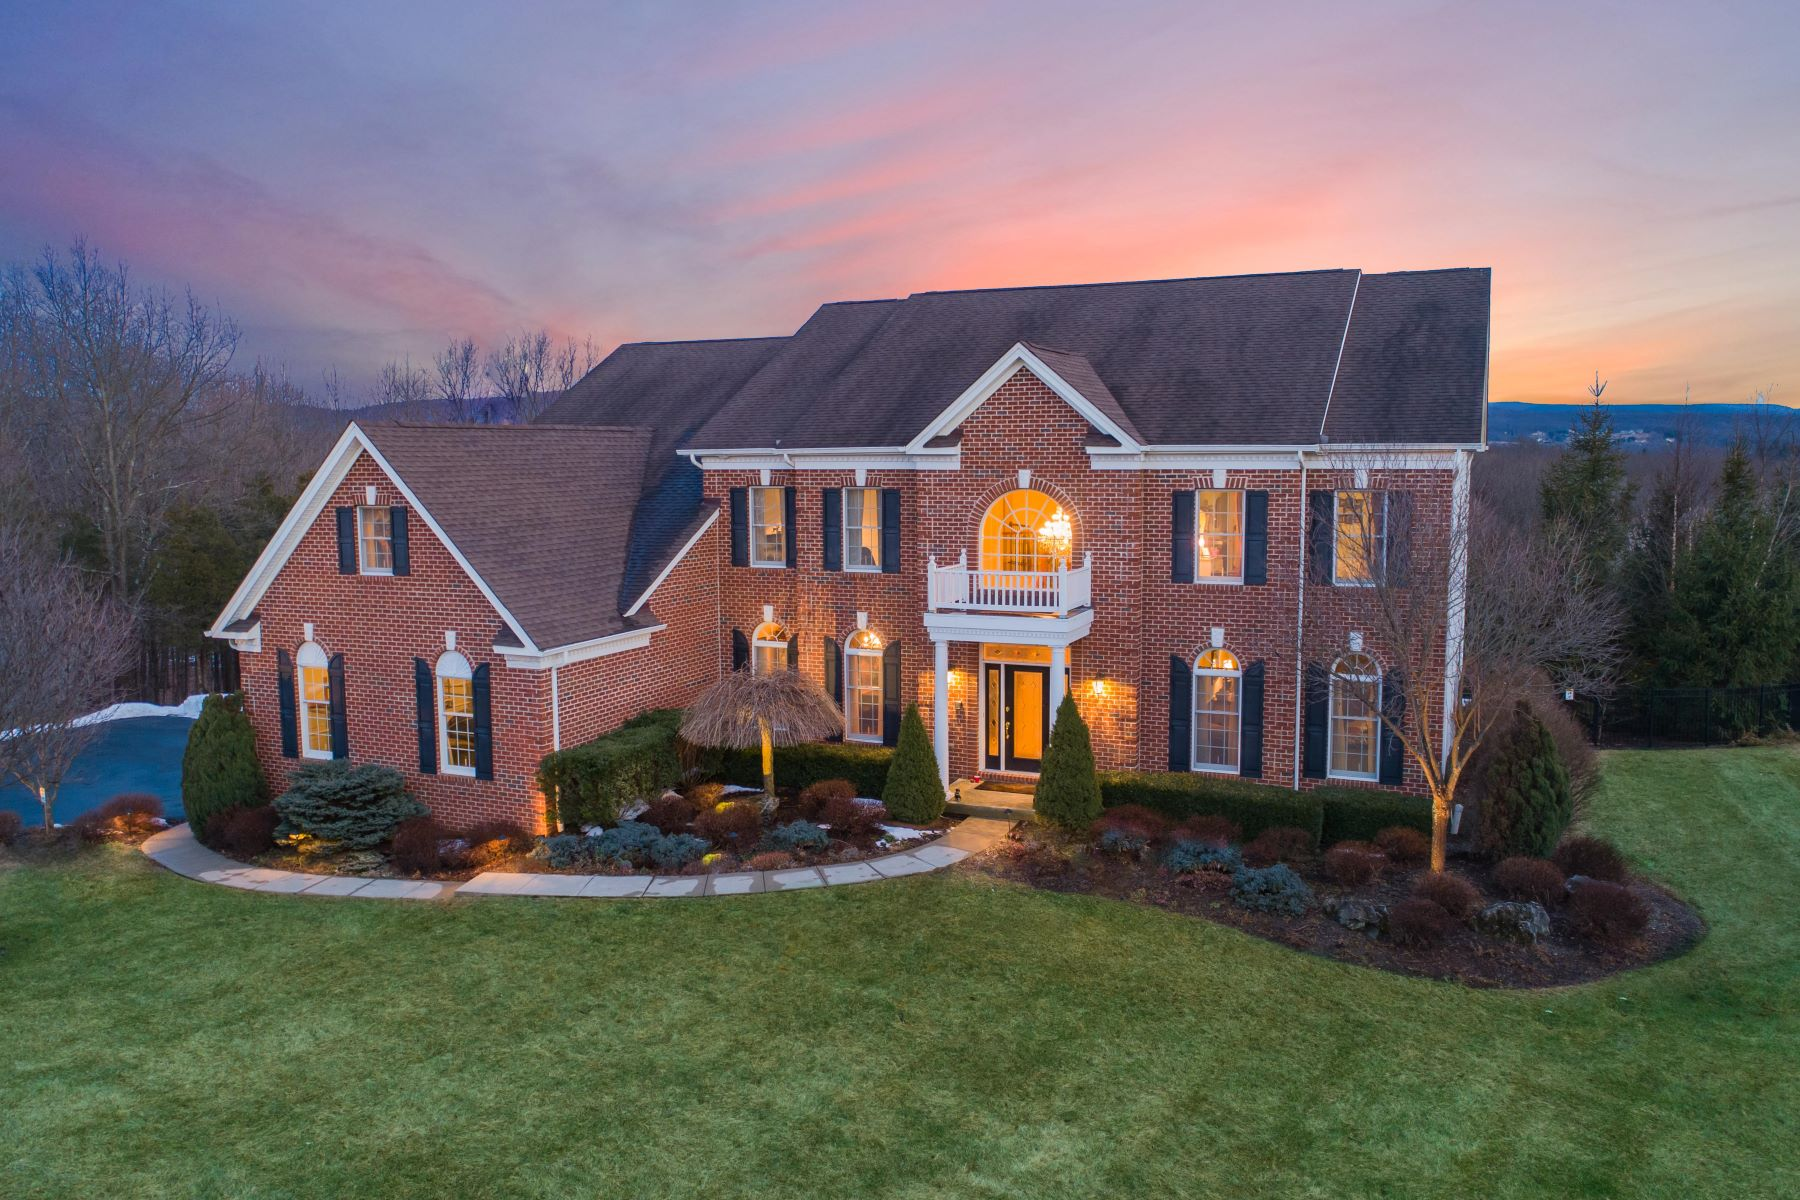 Single Family Home for Sale at Stunning End of Cul De Sac 60 Flagstone Hill Rd, Wantage, New Jersey 07461 United States